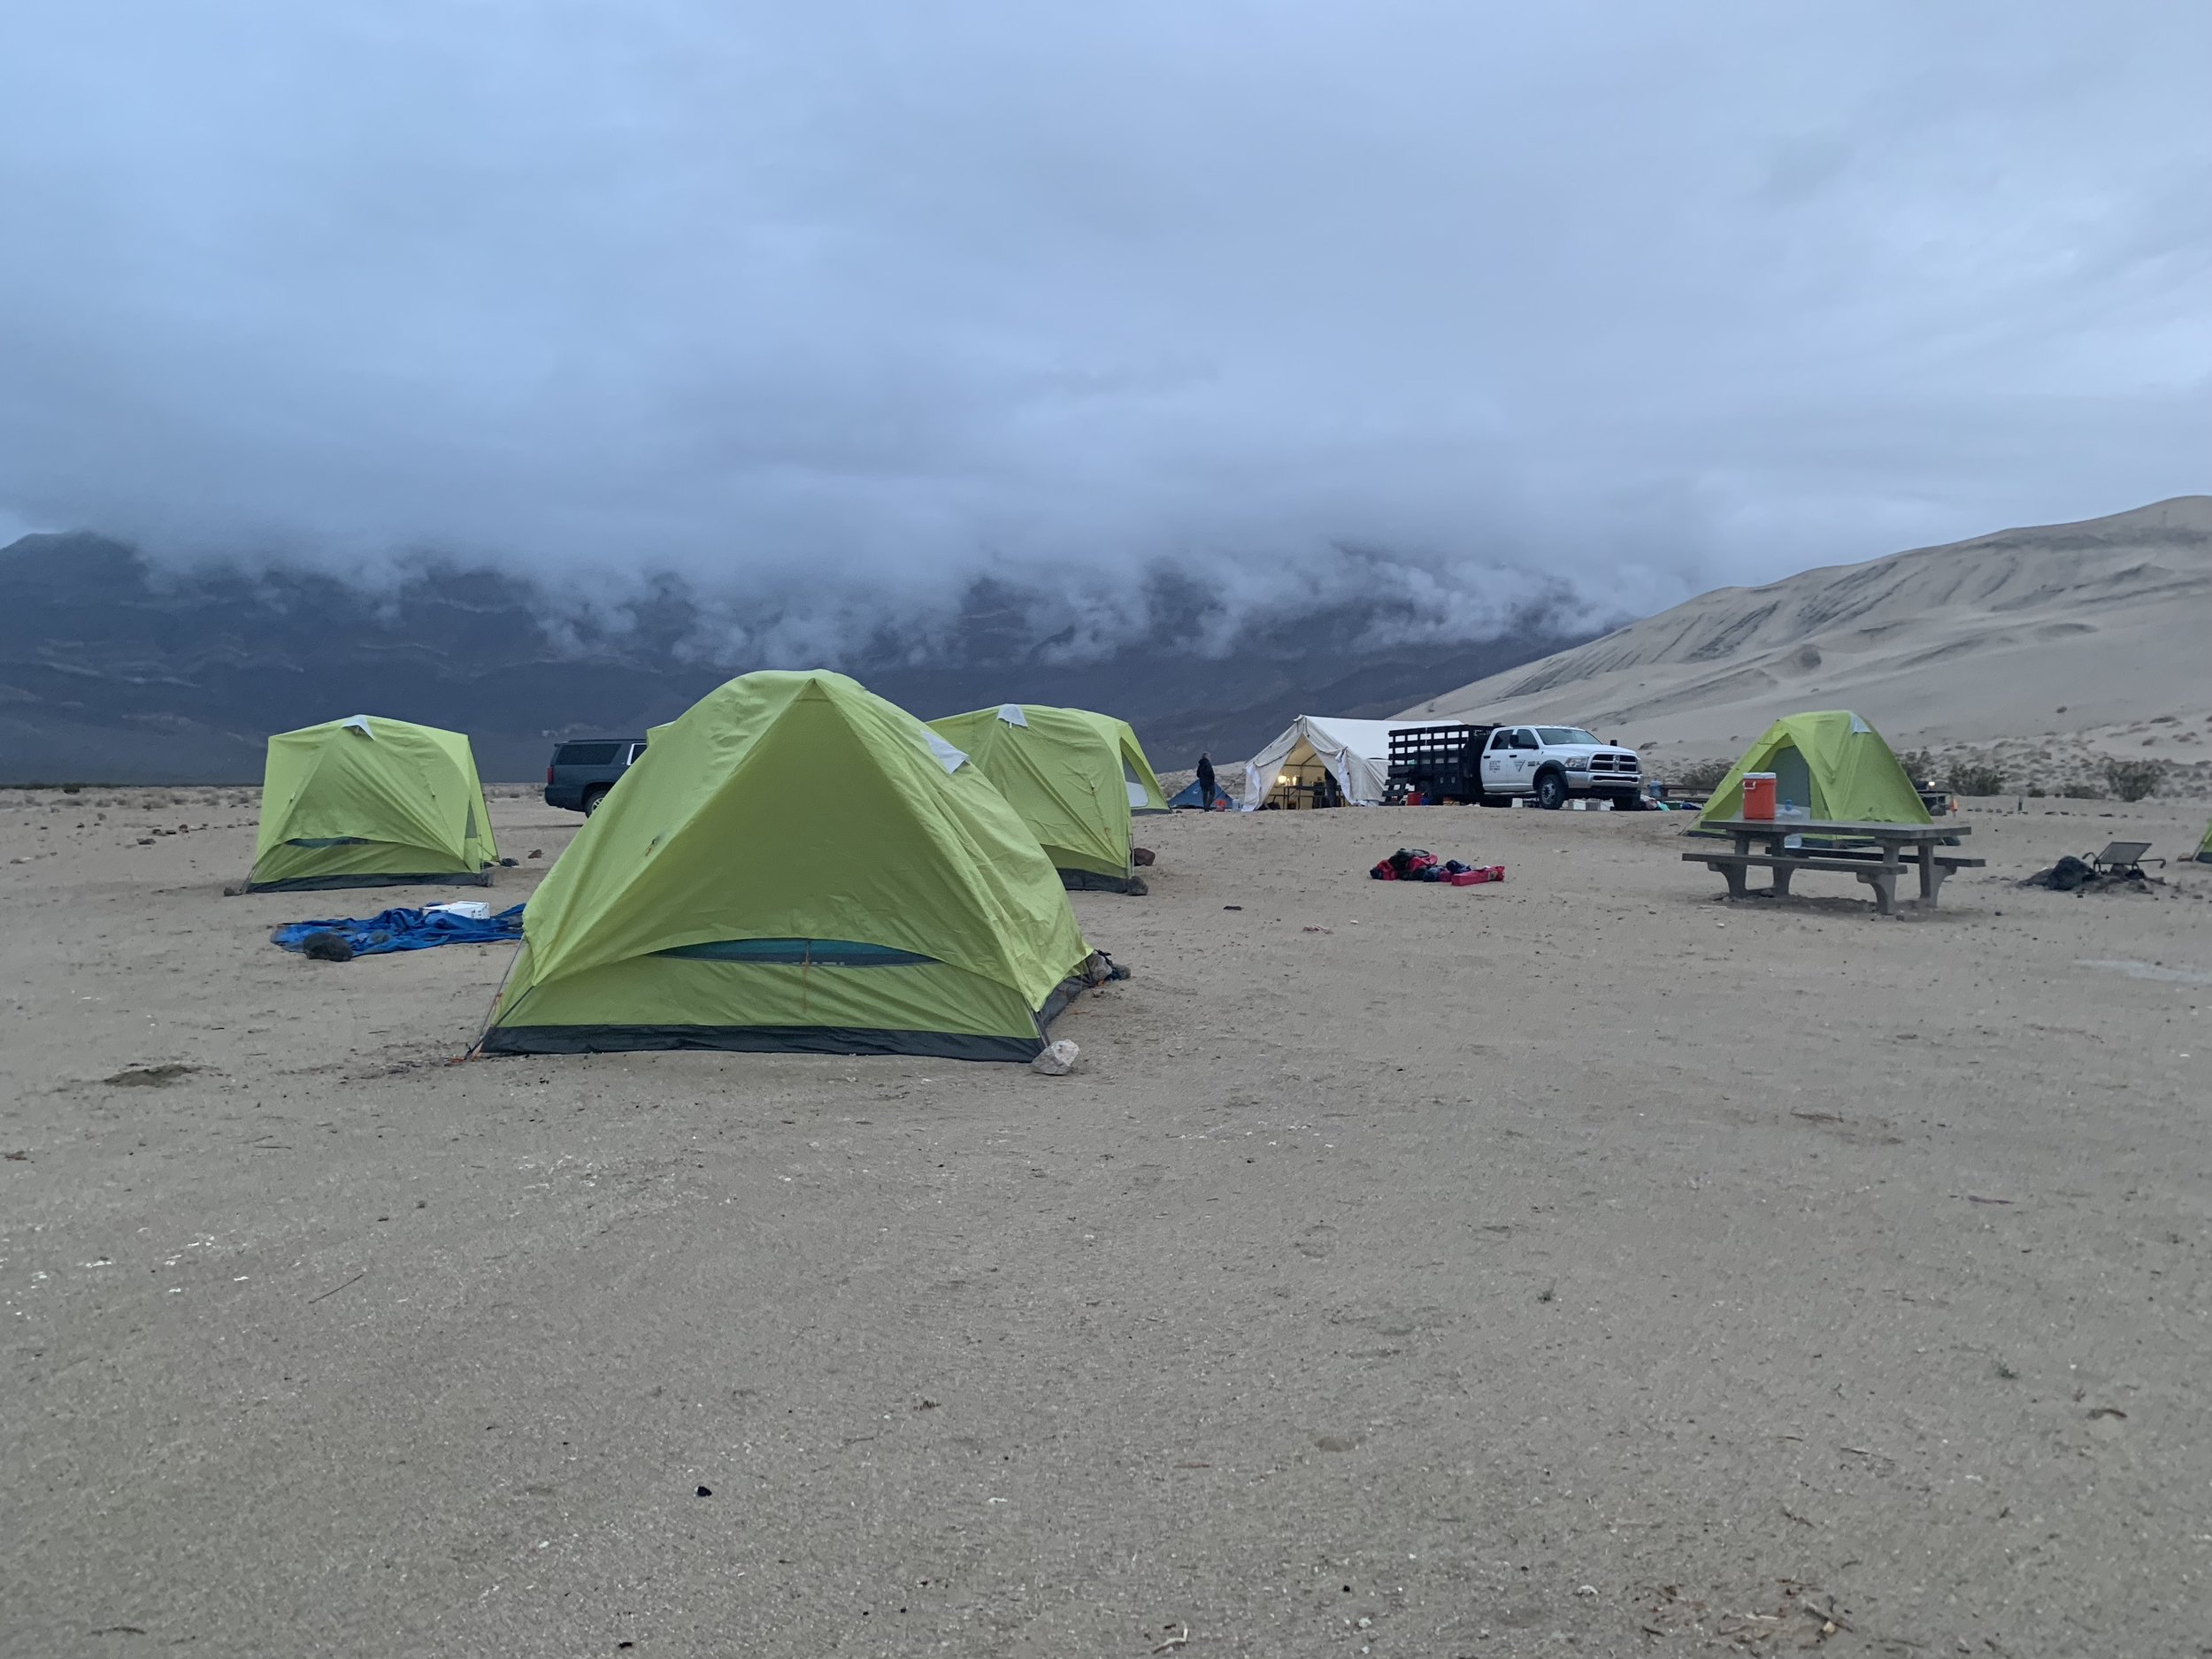 Base camp at Eureka Dunes